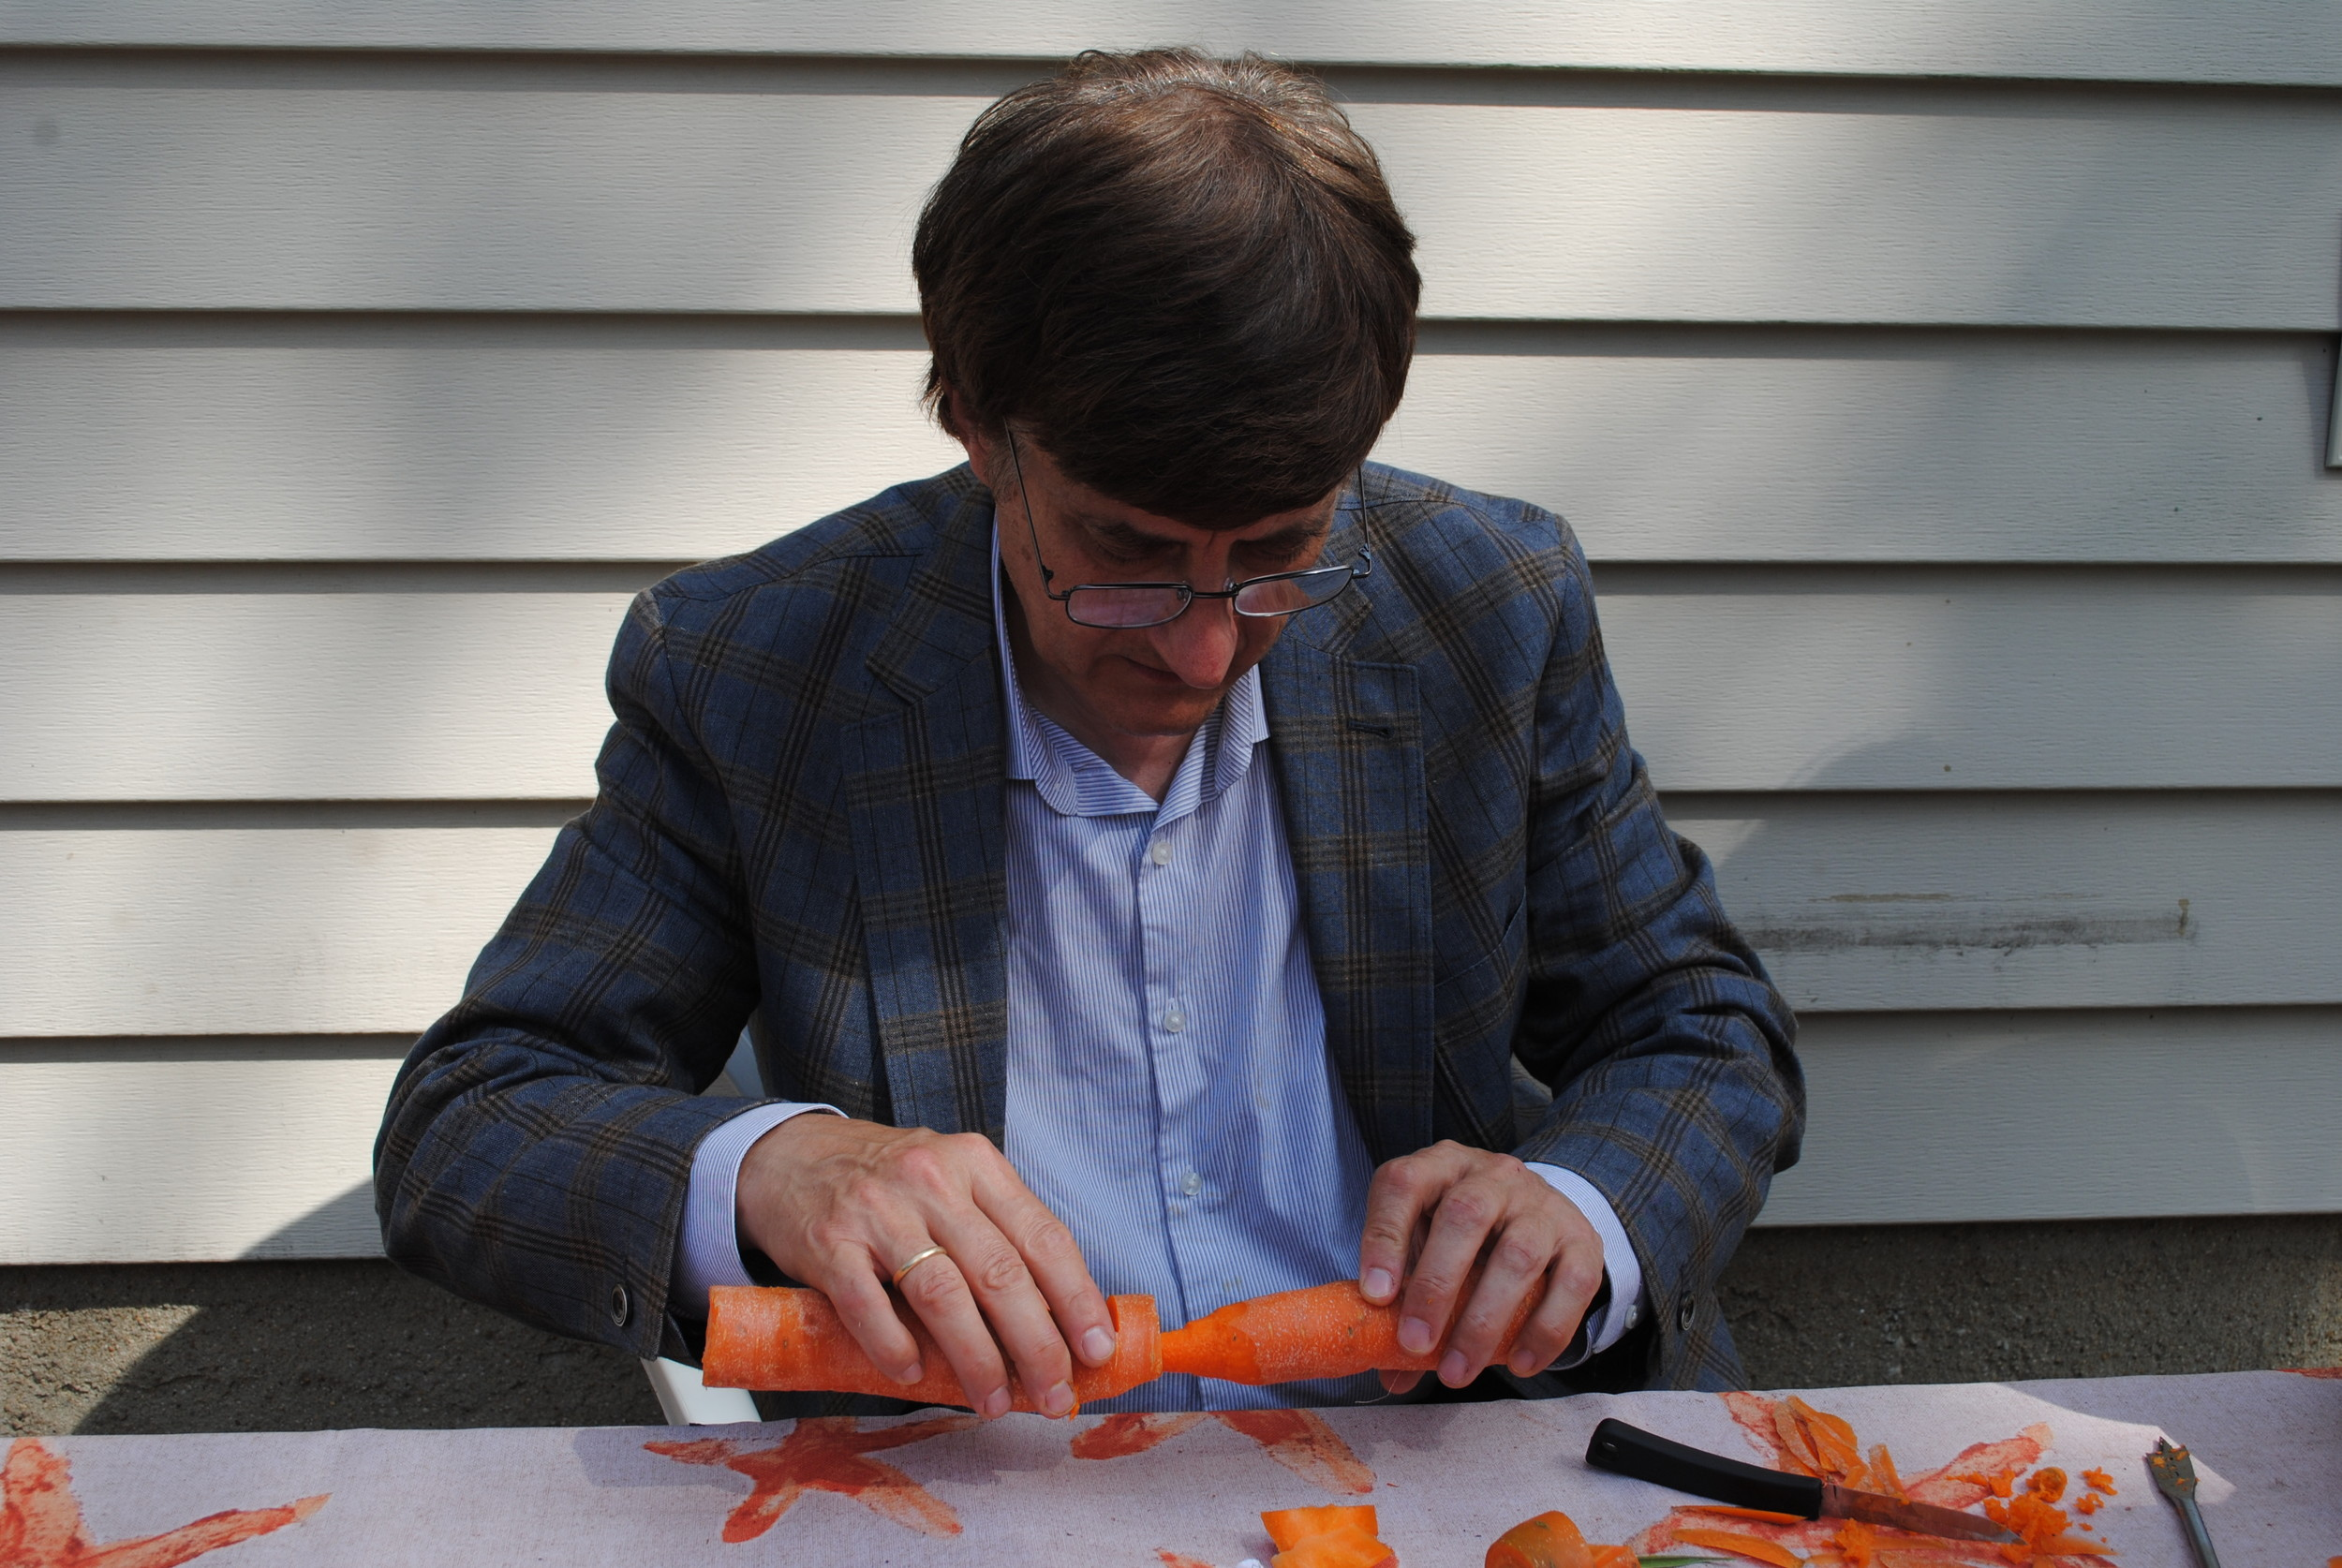 Dr. Dale Stuckenbruck, one of the orchestra chairs, spent time shaving down a carrot to the perfect size with a knife.